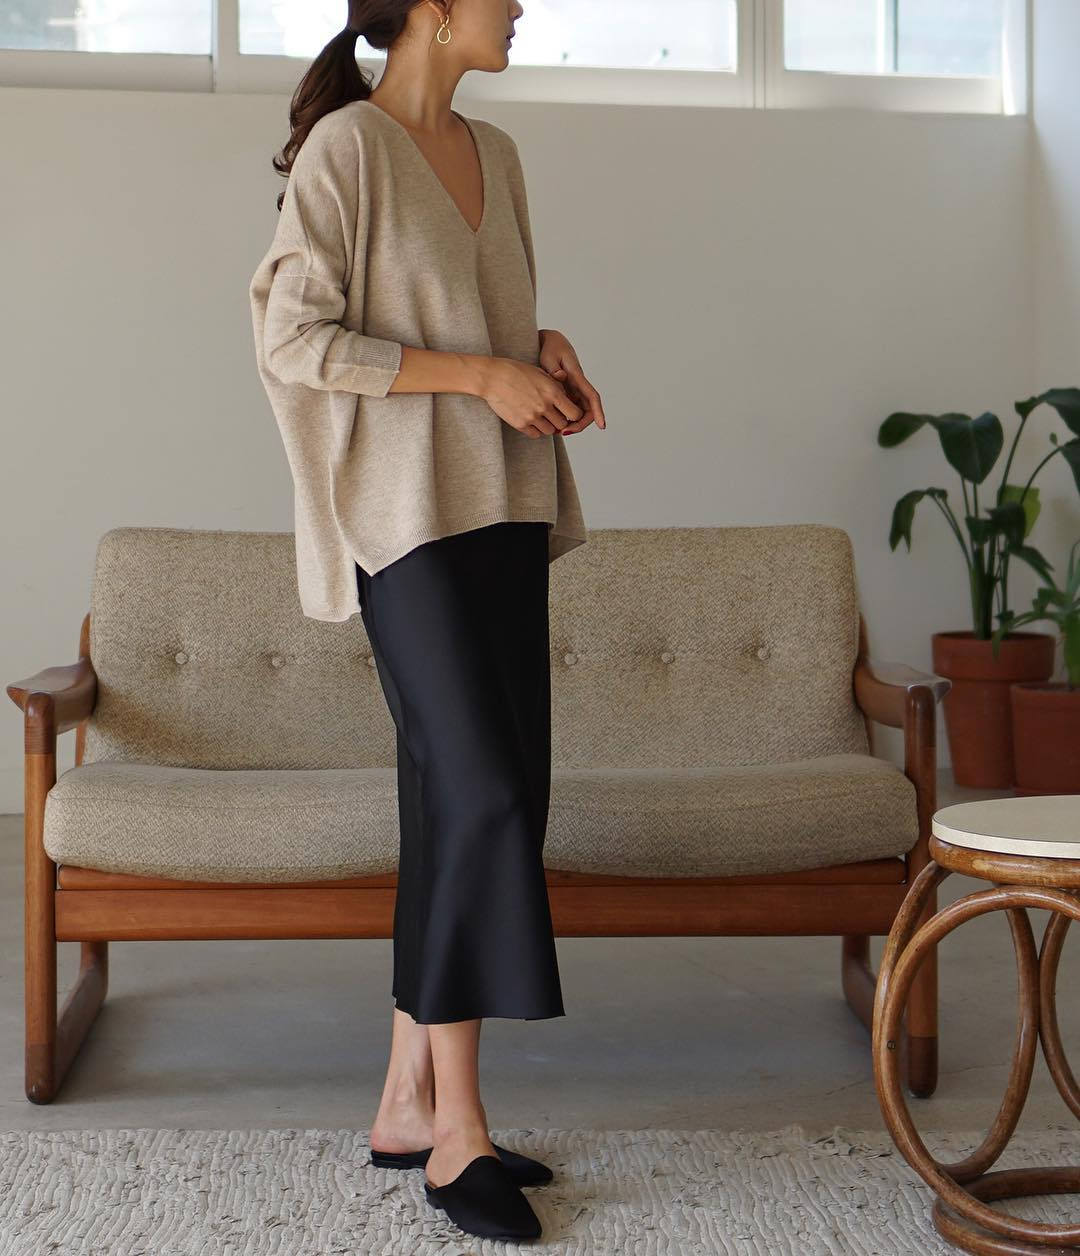 Comfy Yet Stylish Work-From-Home Outfit Idea — neutral v-neck sweater, silk black midi skirt, and black mule flats.